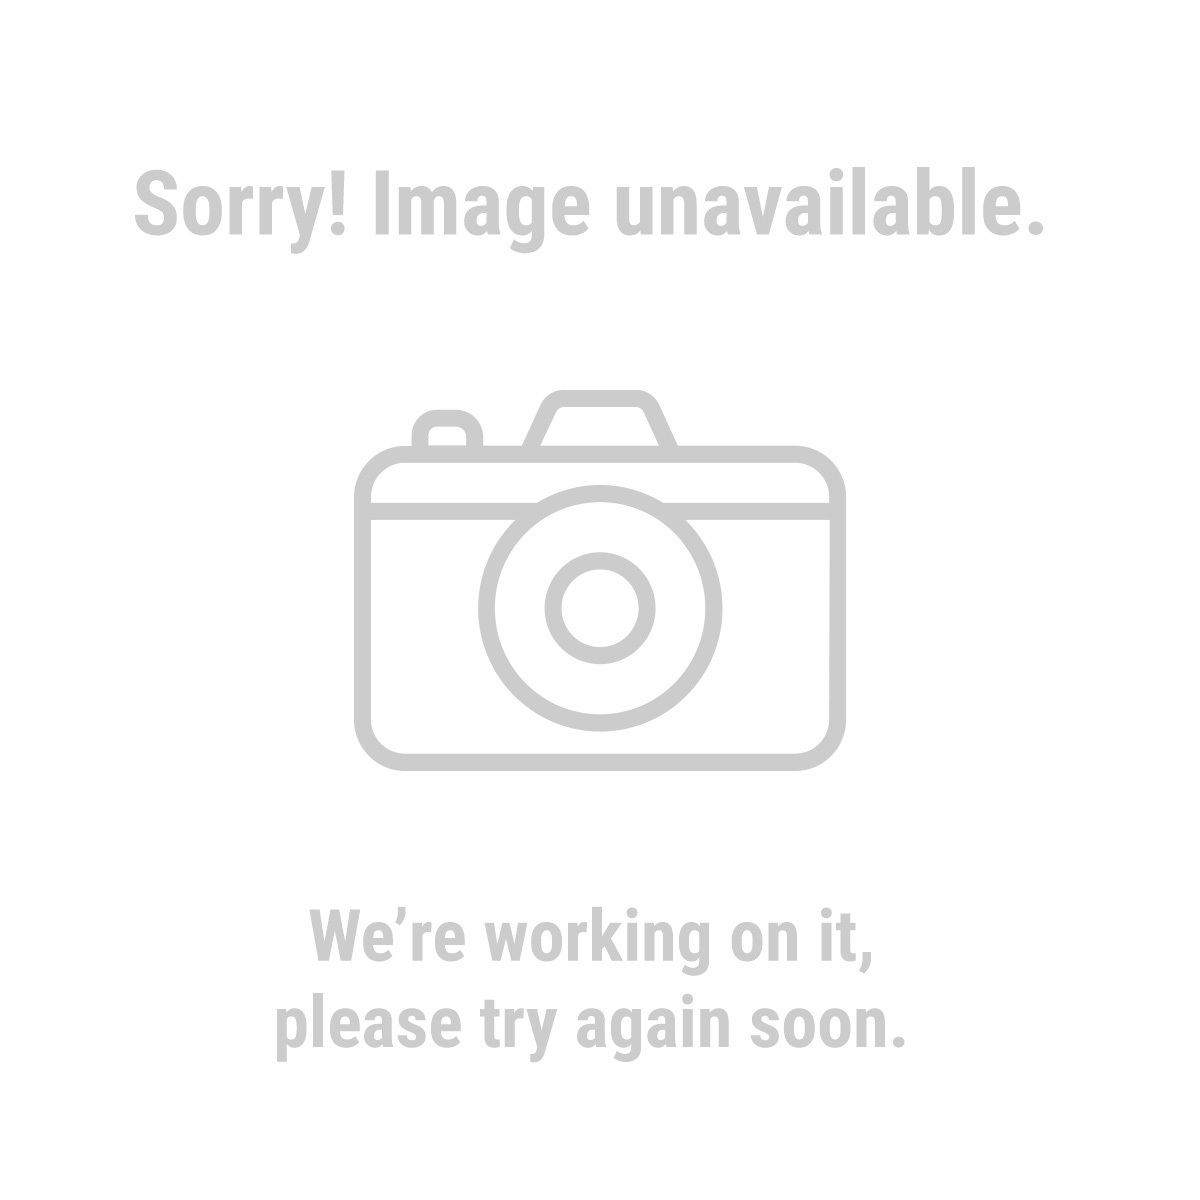 Pittsburgh 37861 10 Piece SAE T-Handled Hex Key Set